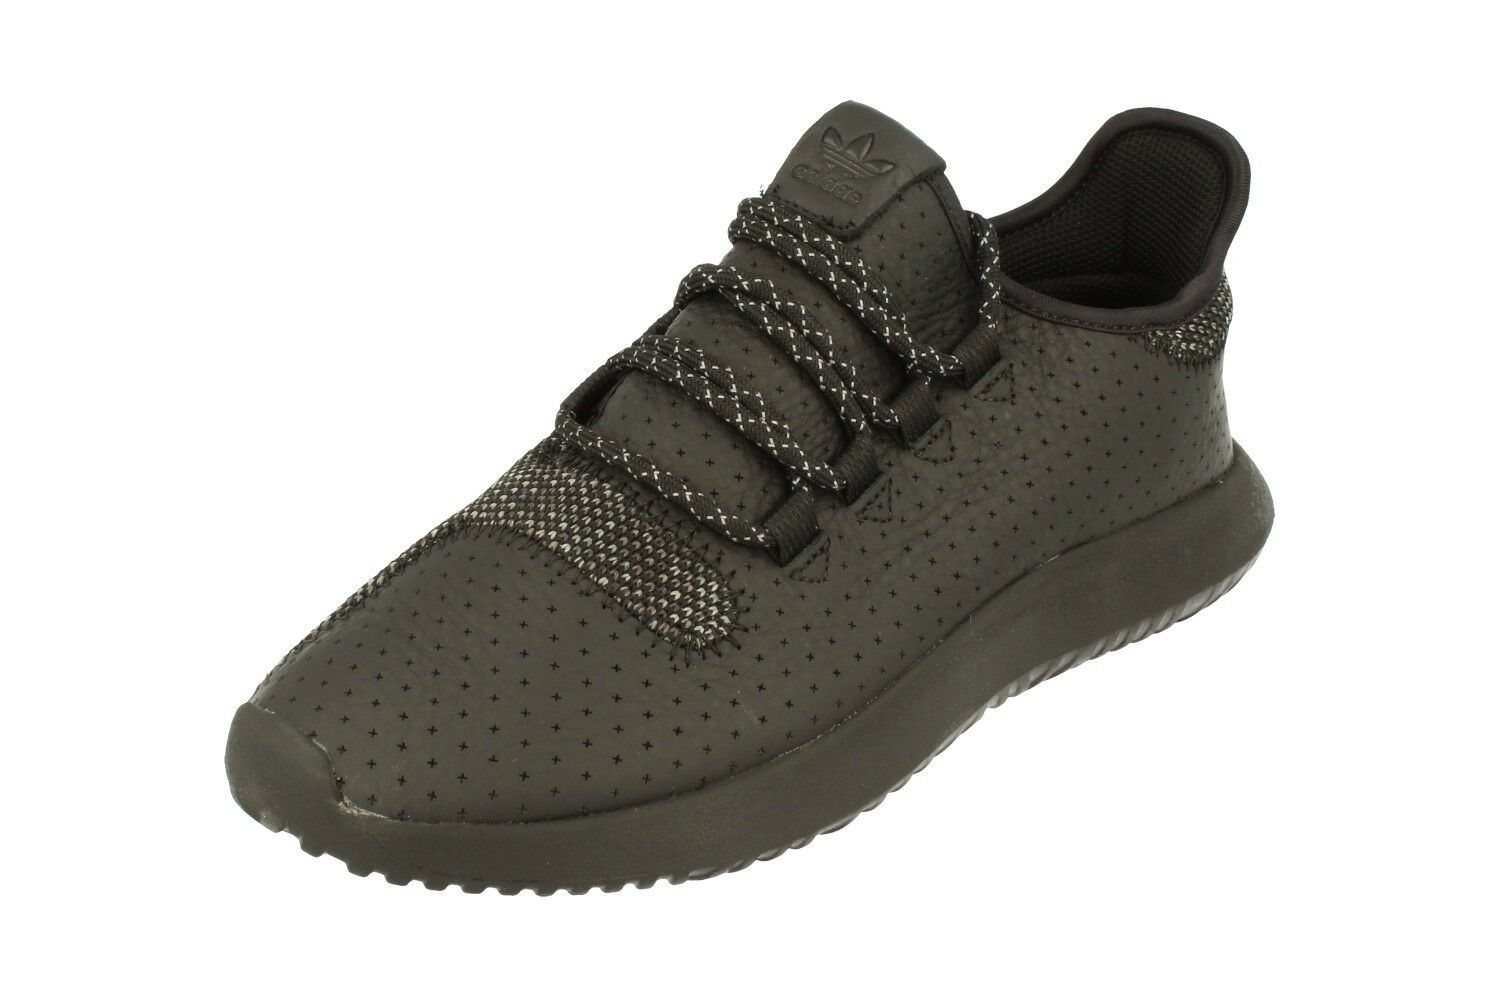 Adidas Originals Sneakers Tubular Shadow Hombre Trainers Sneakers Originals BB8823 Zapatos aeee9d